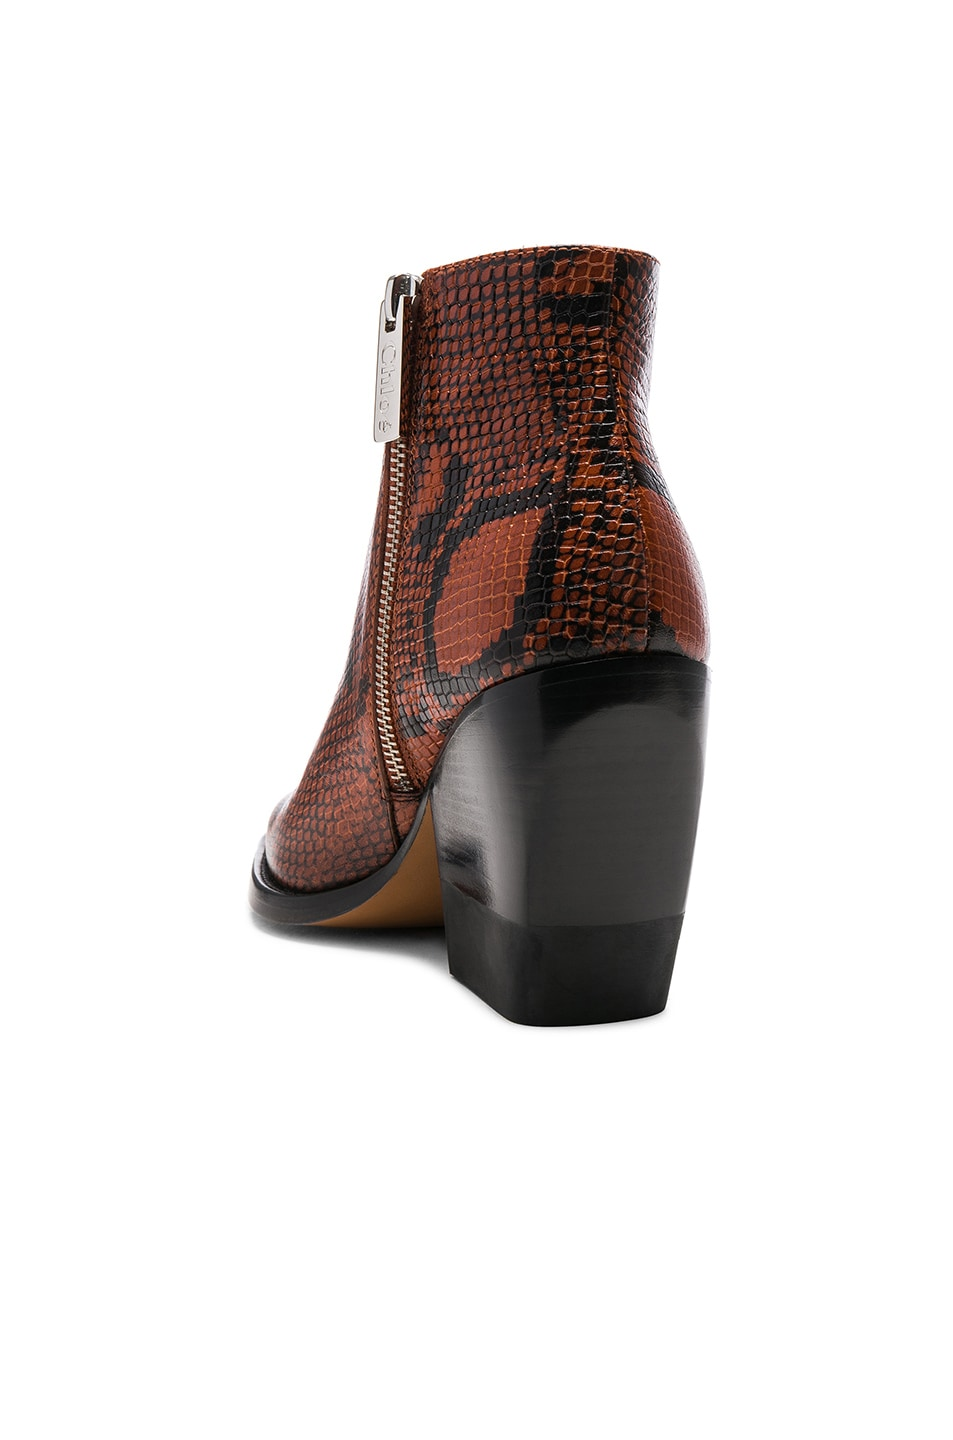 Image 3 of Chloe Python Rylee Print Leather Ankle Boots in Brown